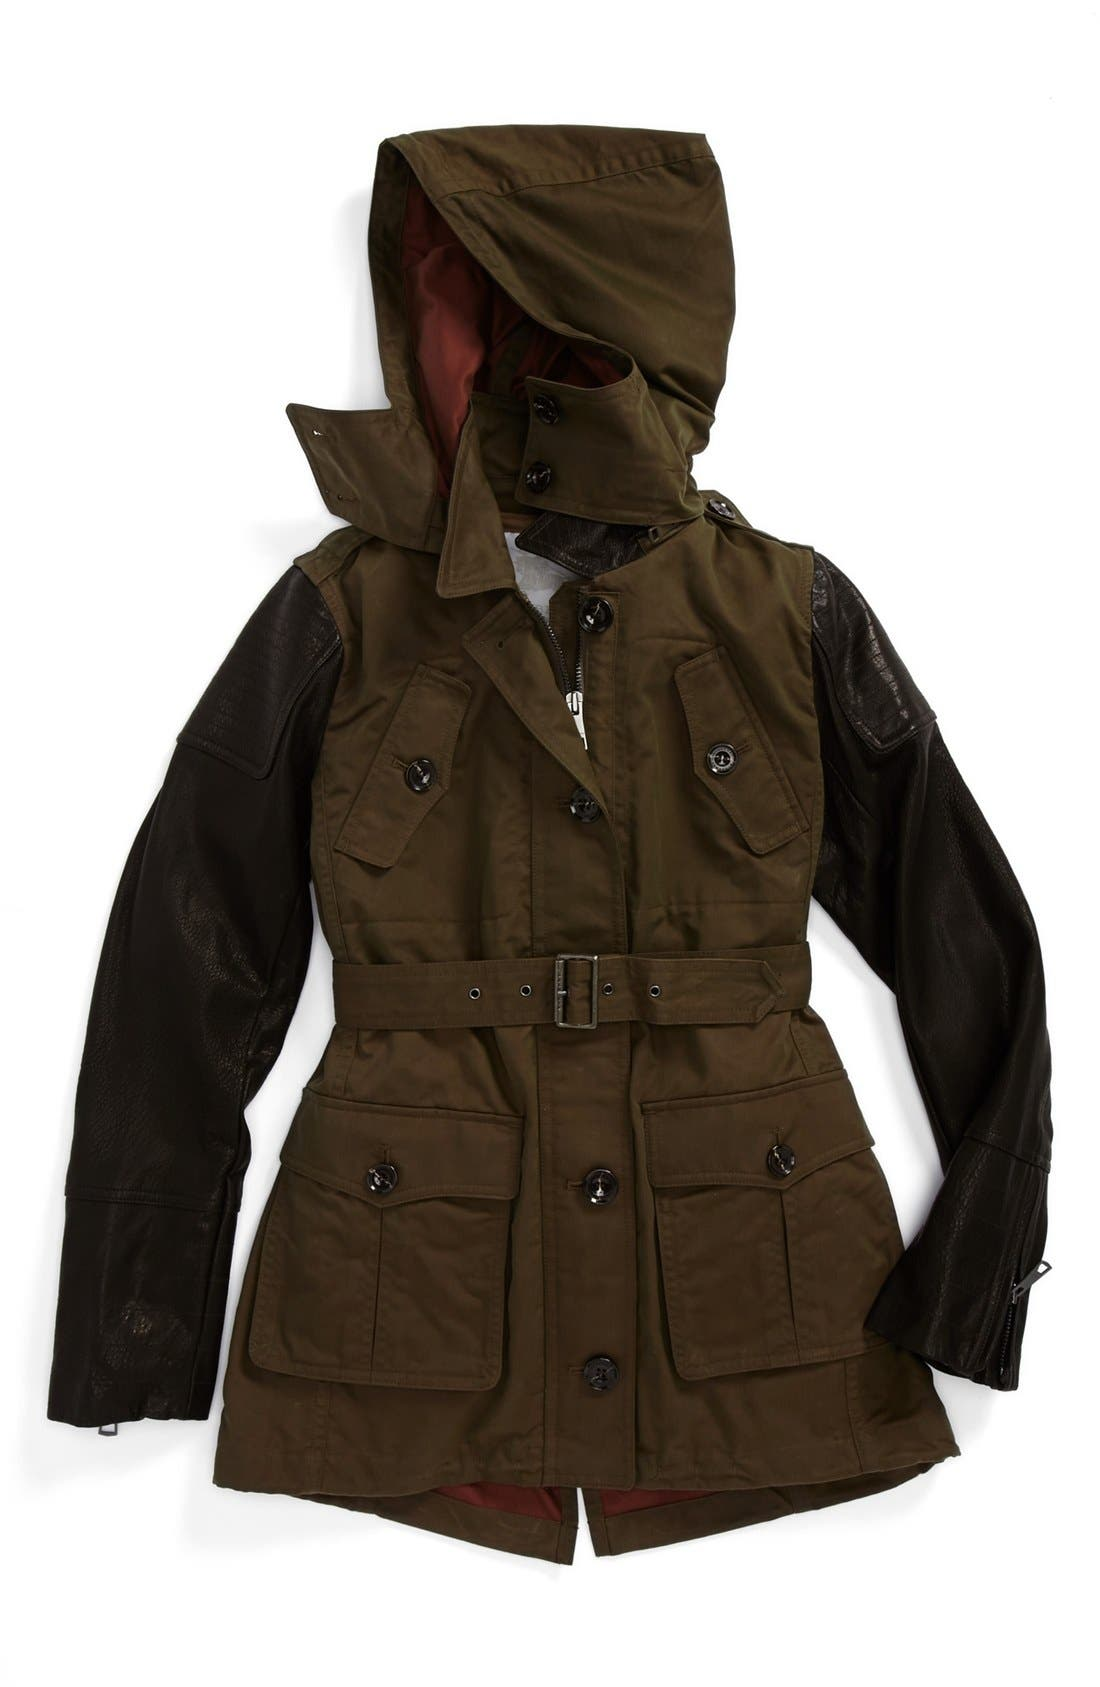 Main Image - Burberry 'Nickleton' Jacket (Little Girls & Big Girls)